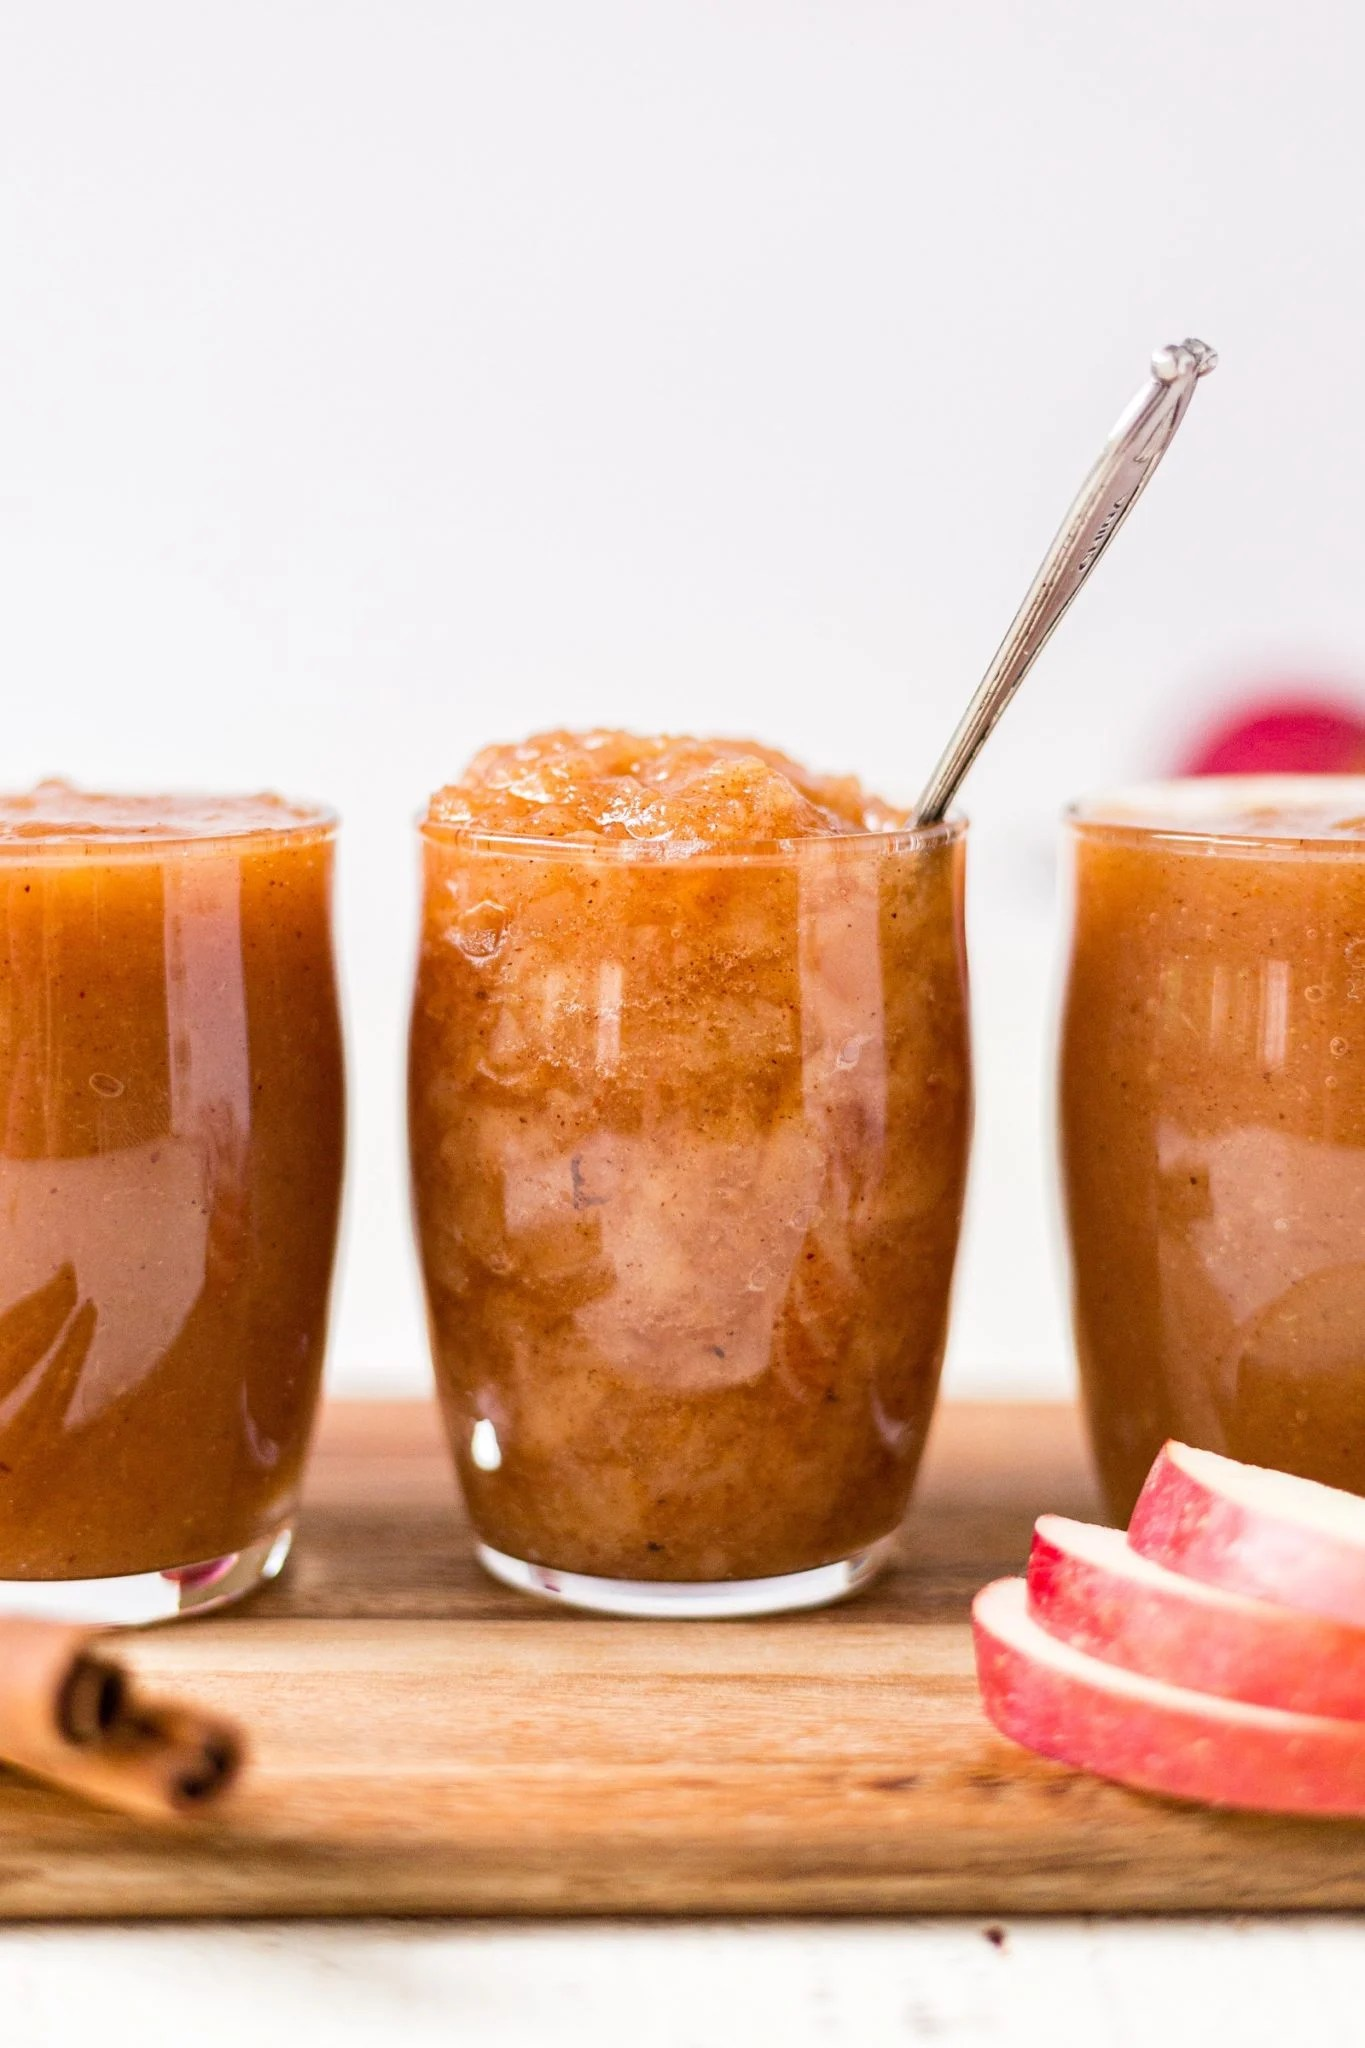 crockpot applesuace recipe in a cup with a spoon